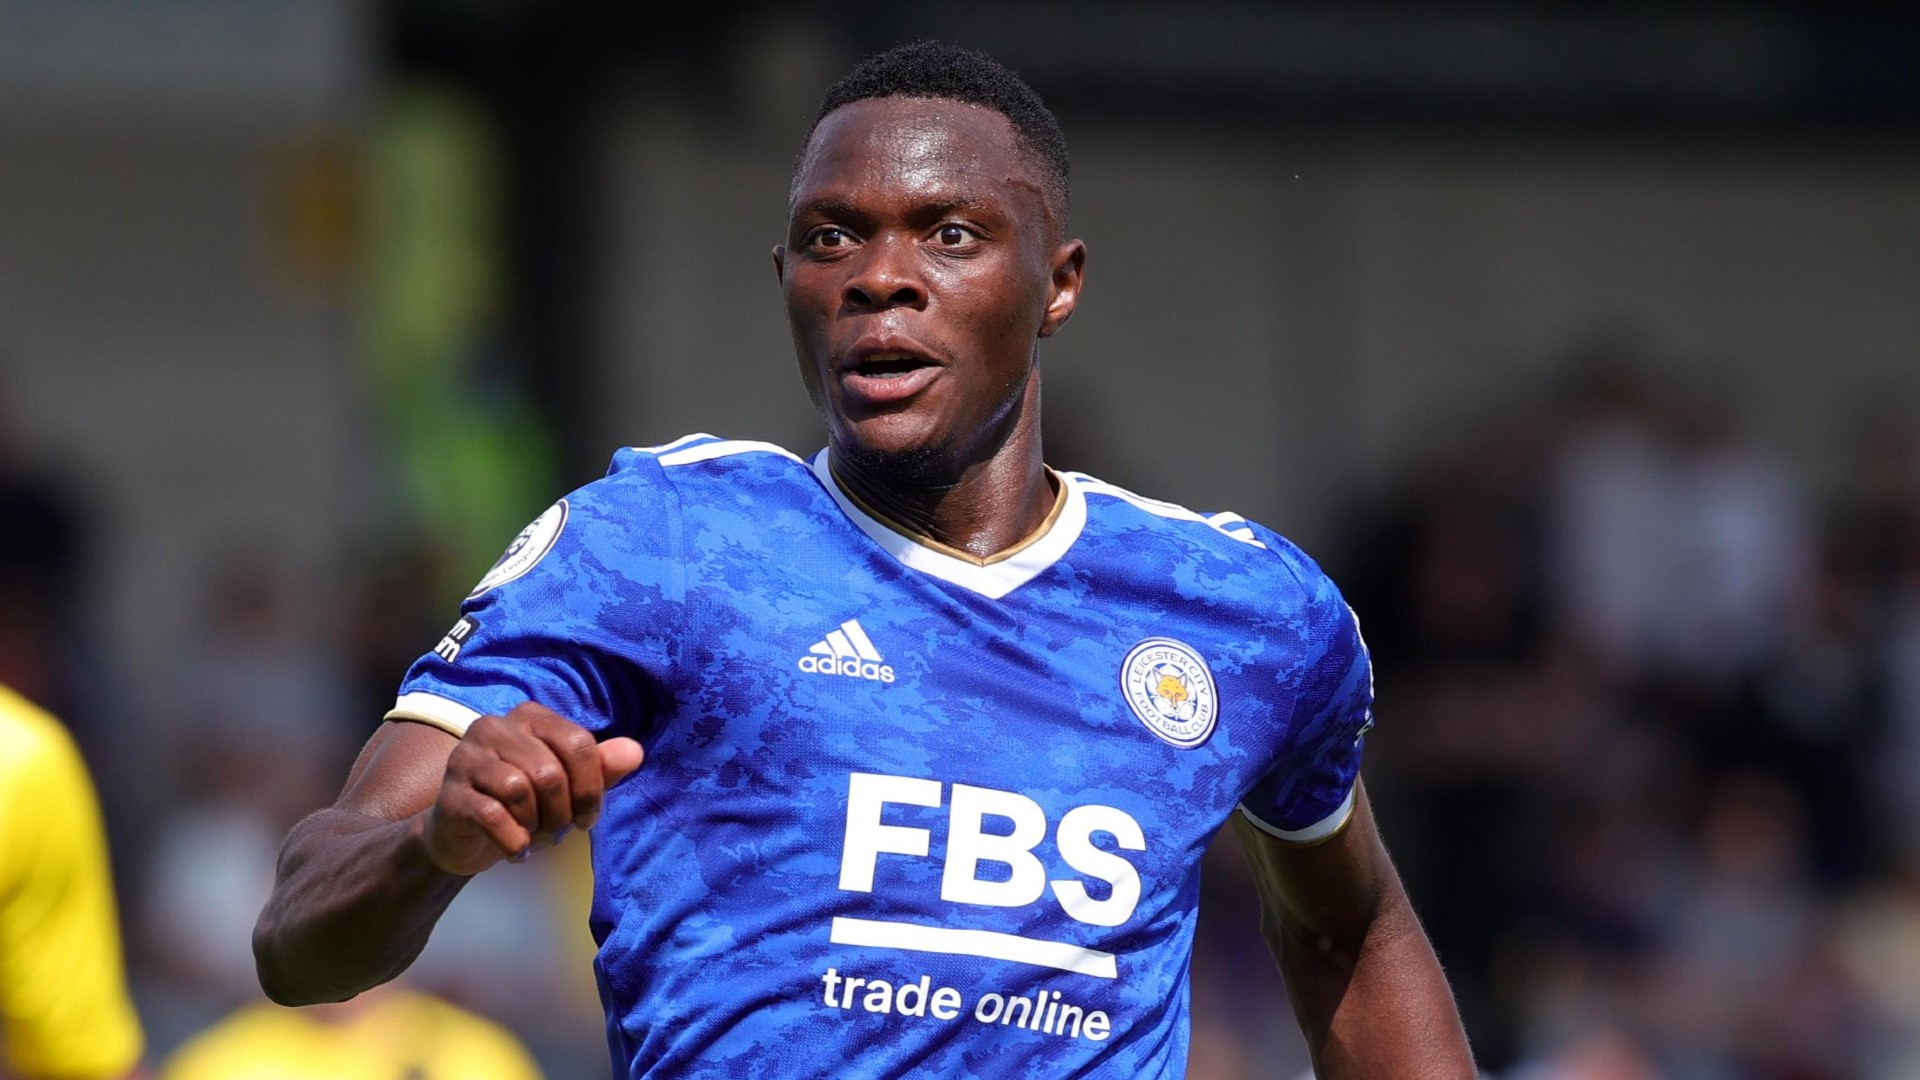 'It's a day that I will treasure' – Daka revels in Leicester City debut